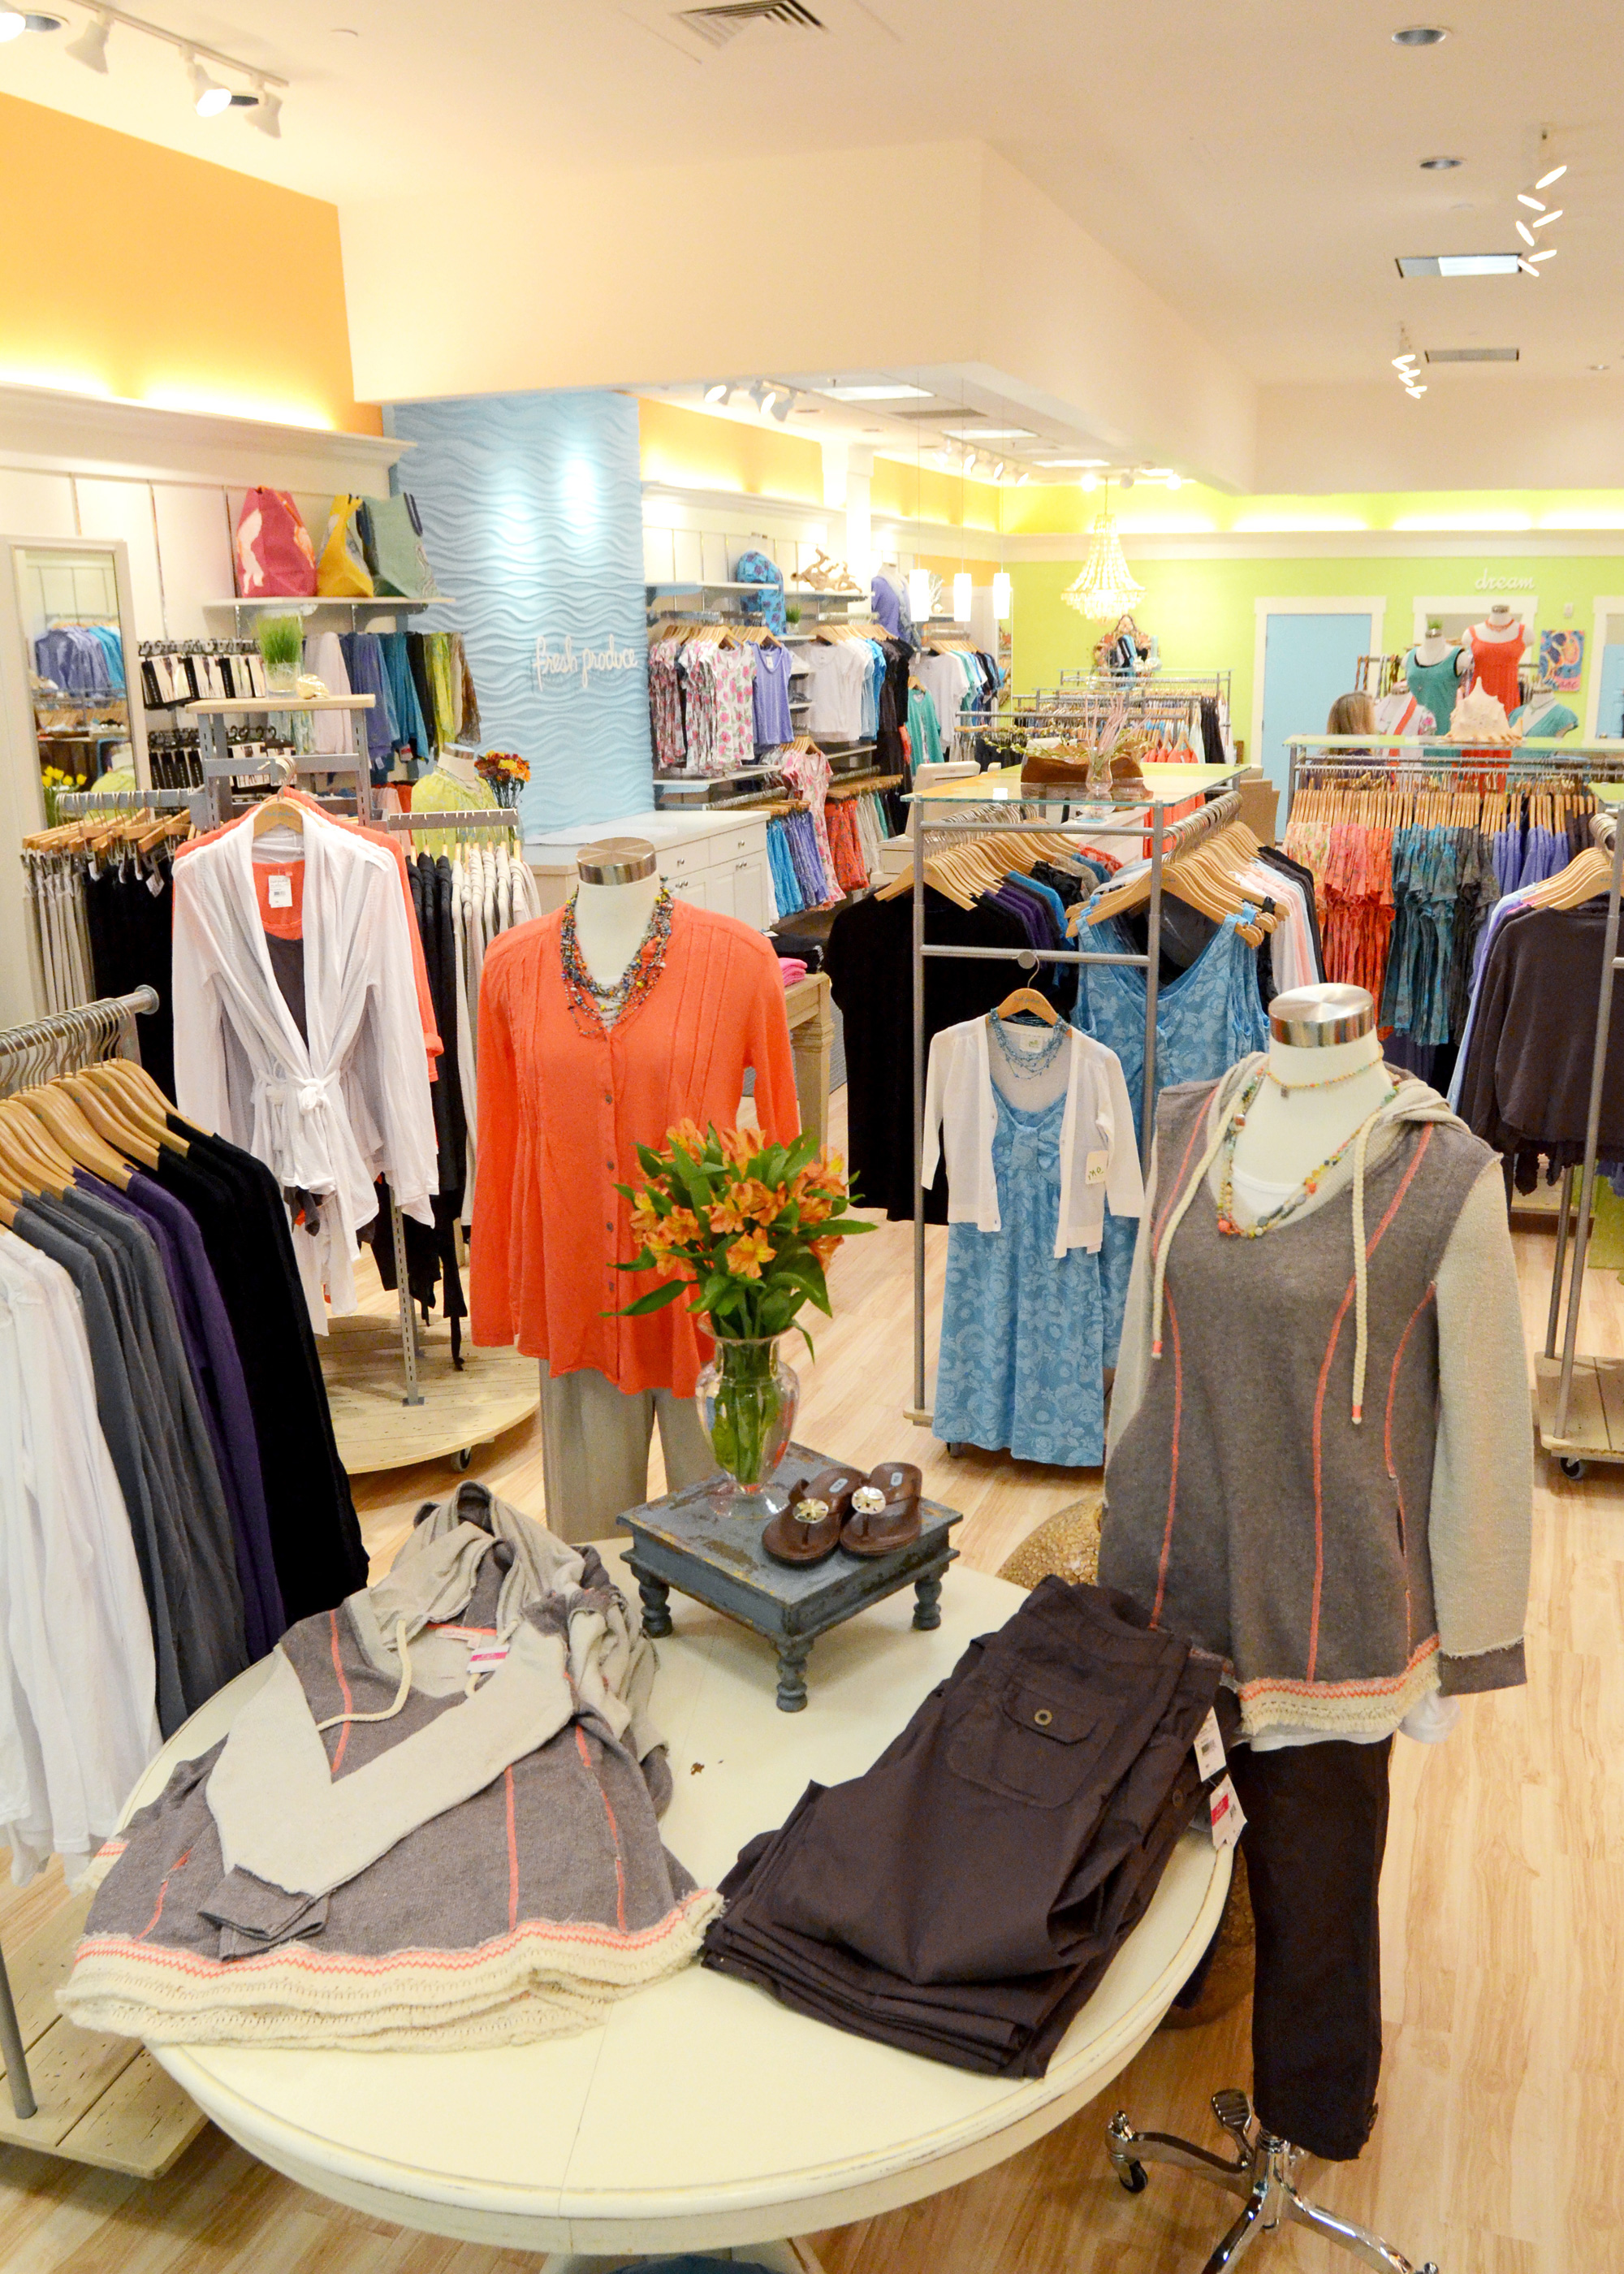 Hot Retailers Hot retailers come in all sizes and formats. Nine of the 10 top businesses represent different retail segments, indicating that growth owes more to management and strategy than any kind of tide lifting boats in any particular category.